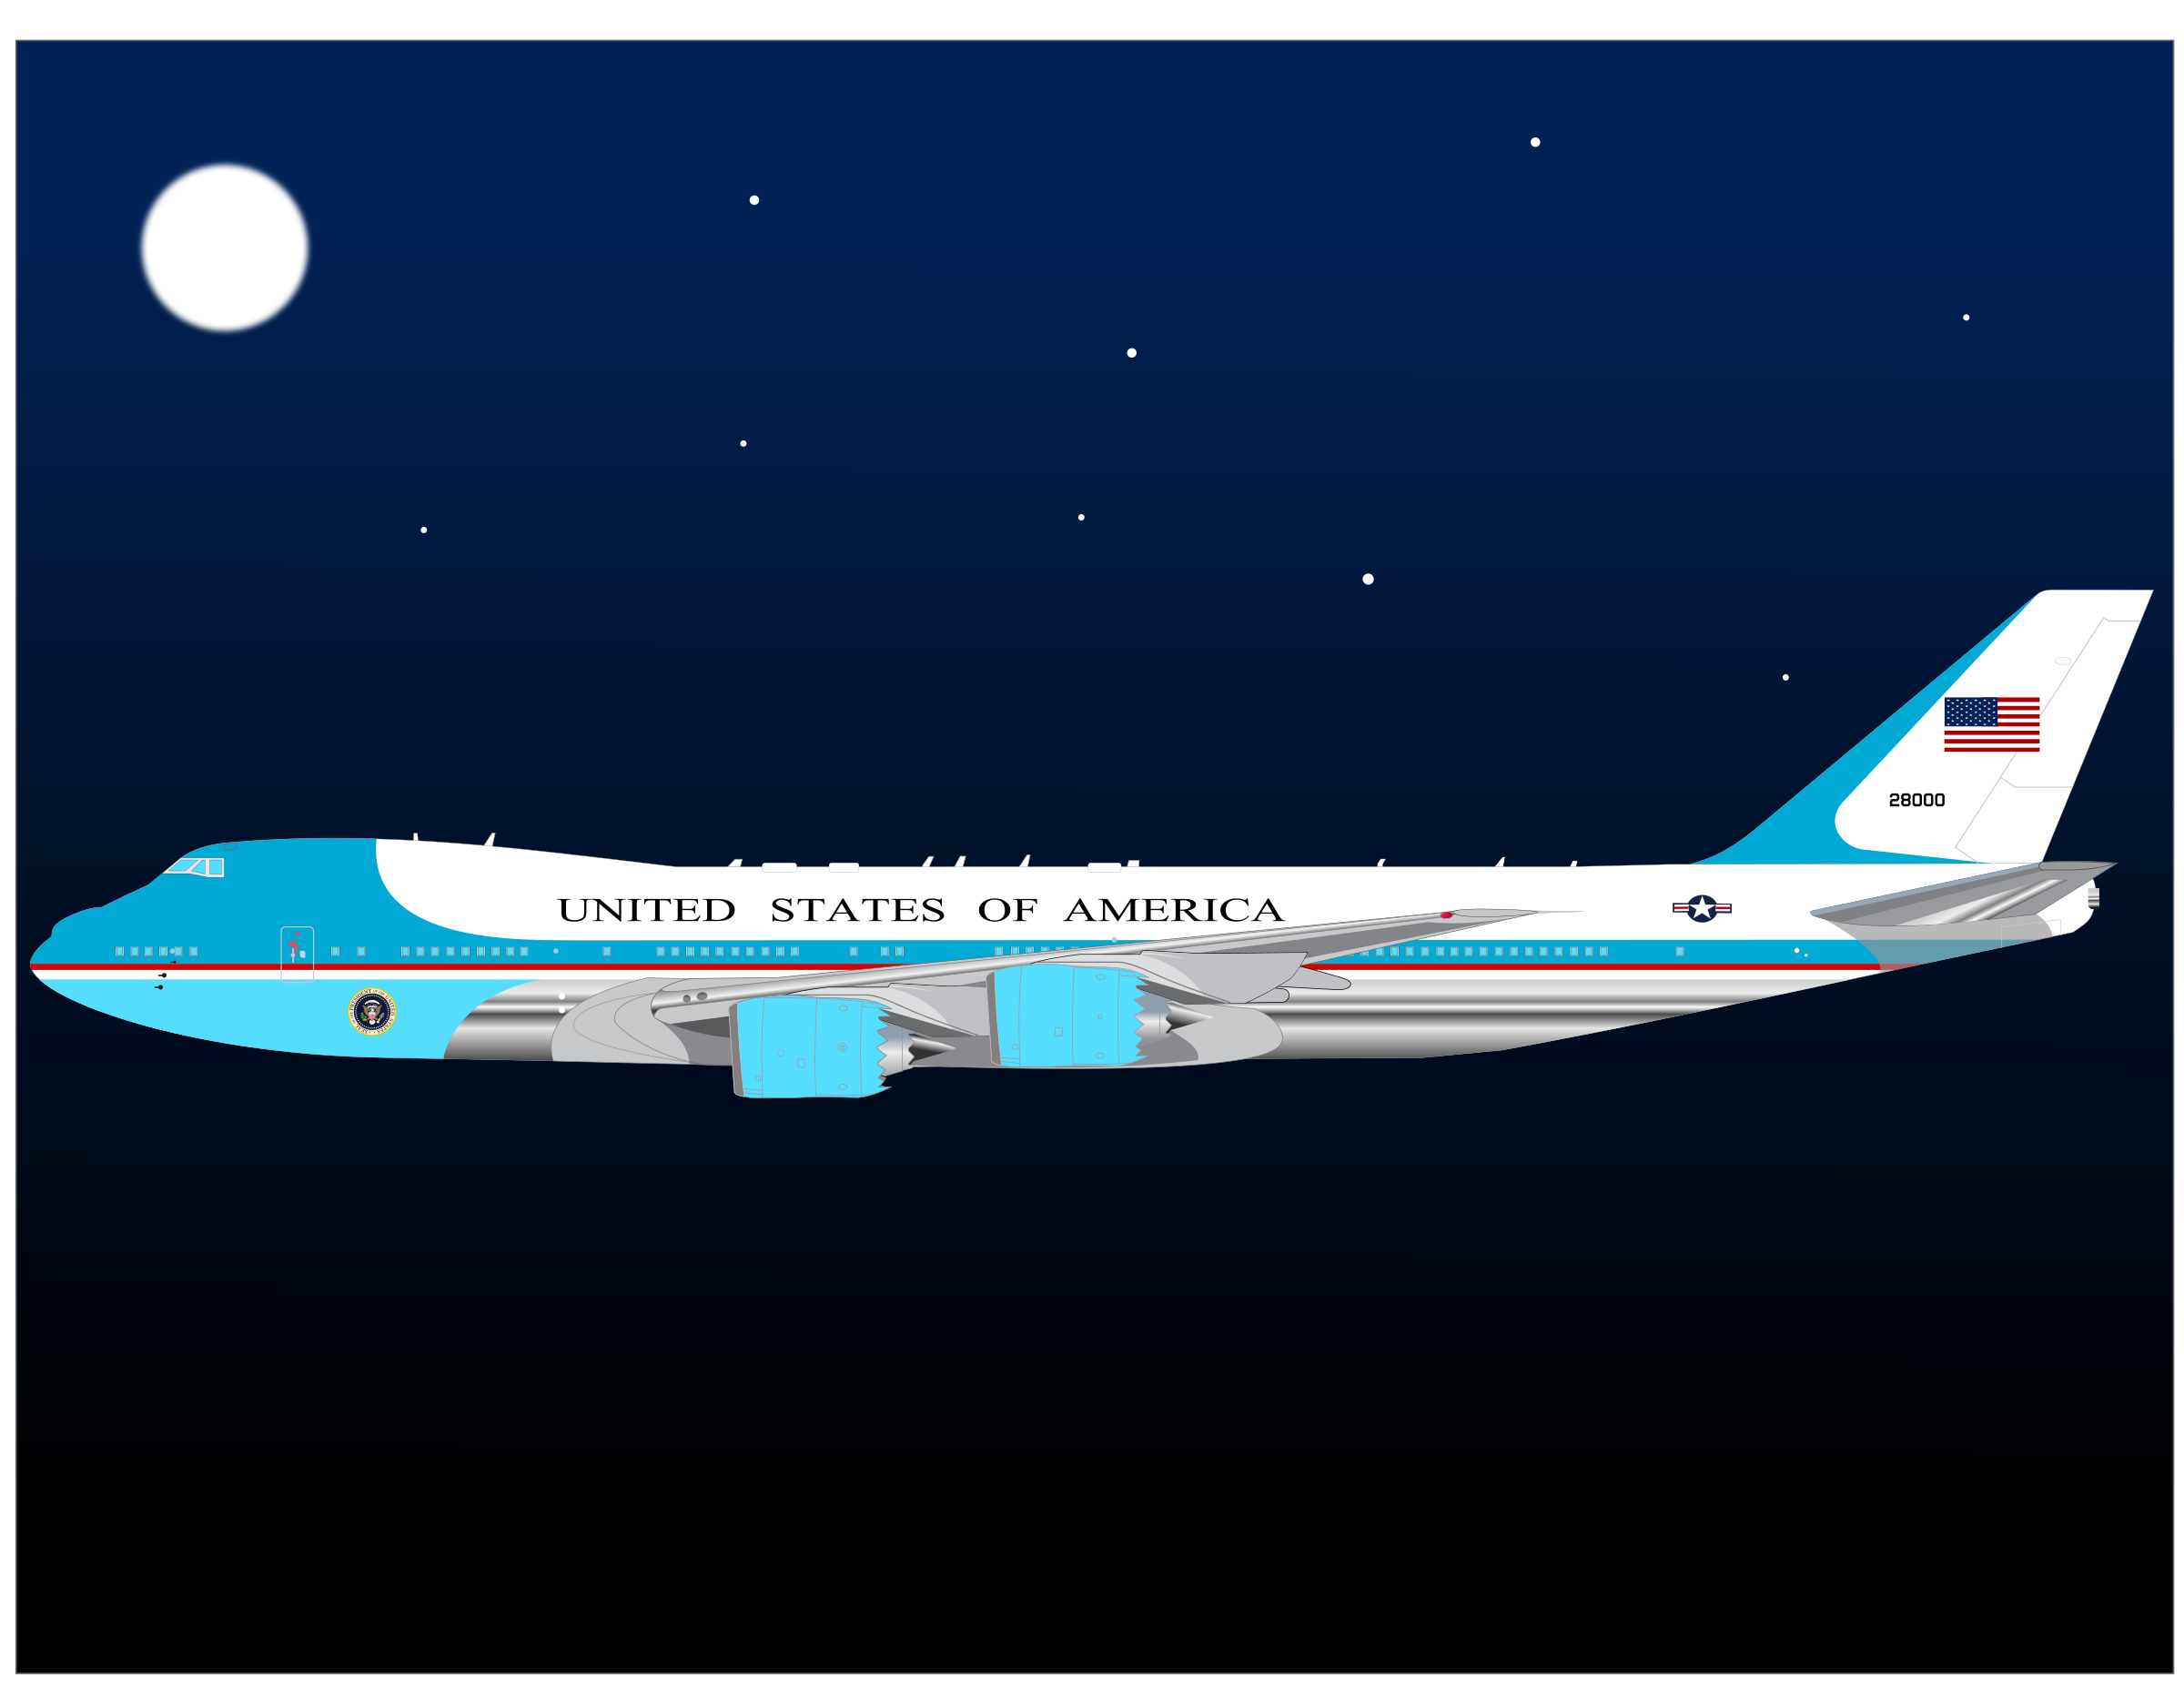 747 Air force One by charner1963